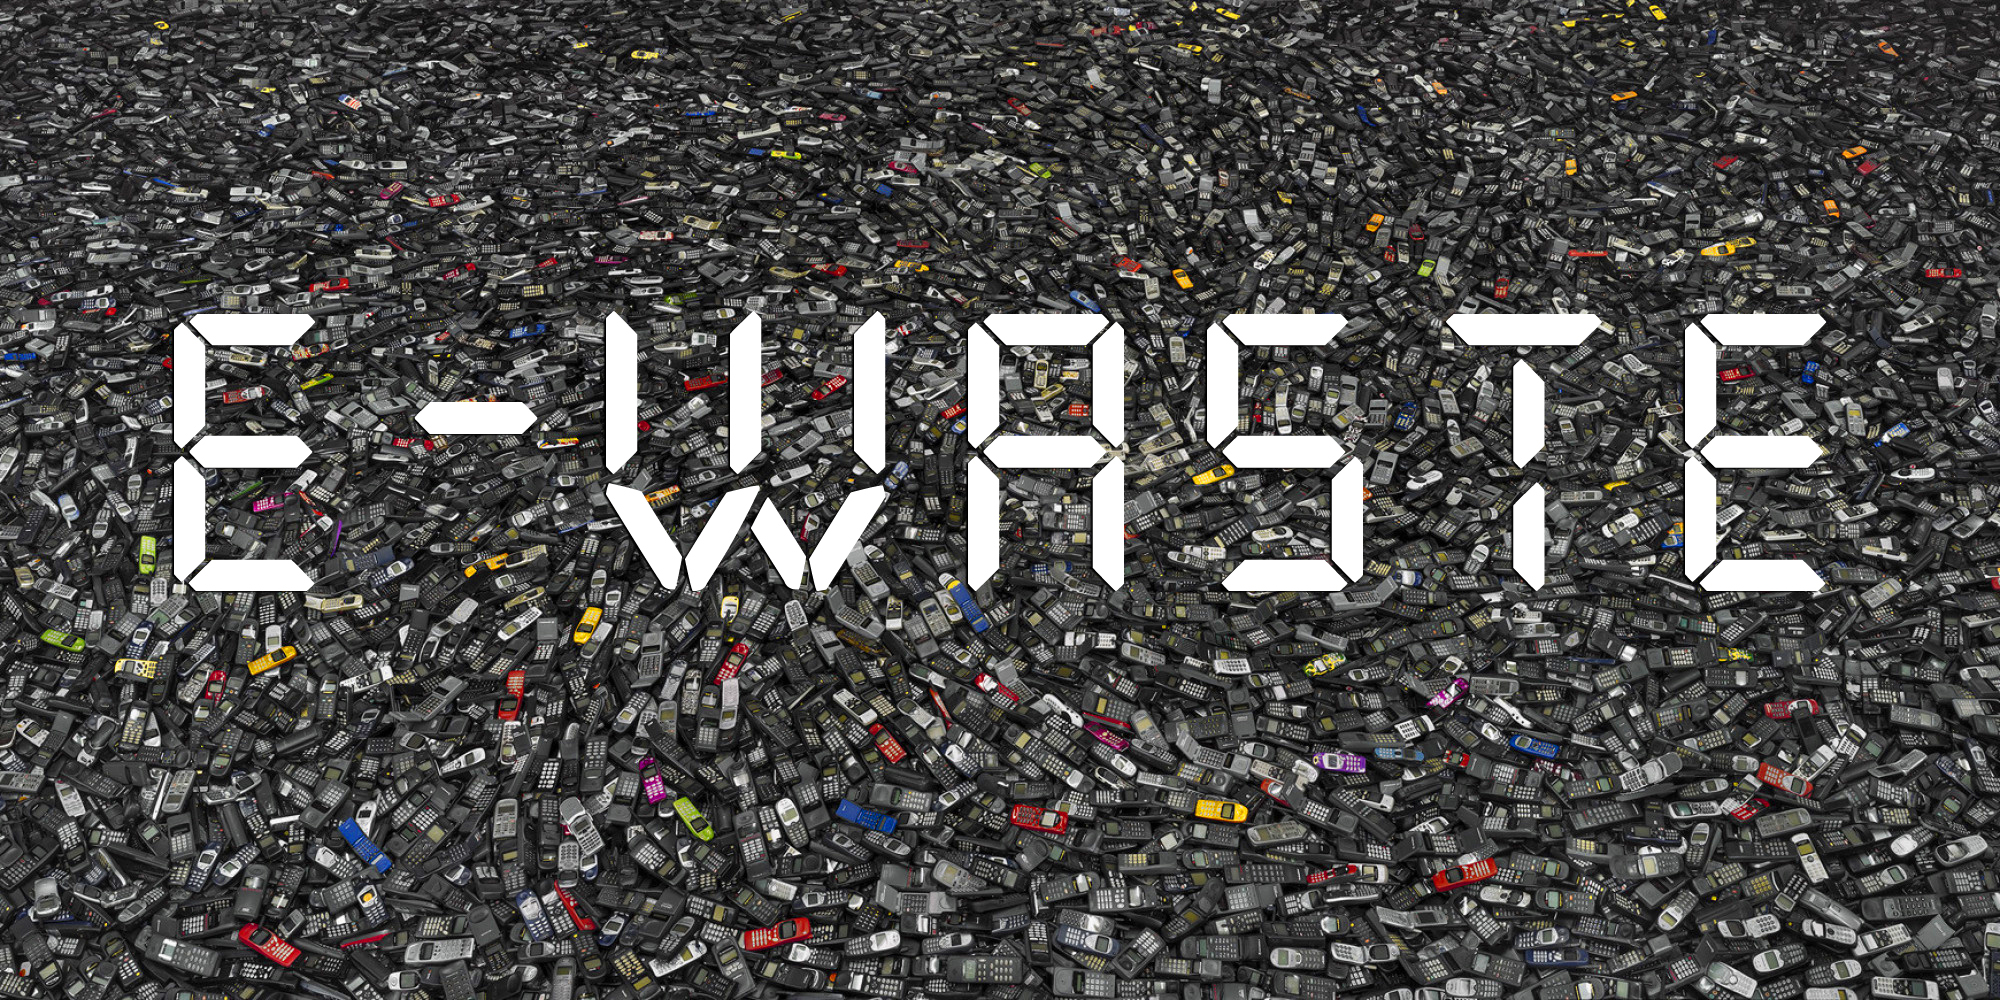 How Much E-waste Do You Throw Out Every Year?